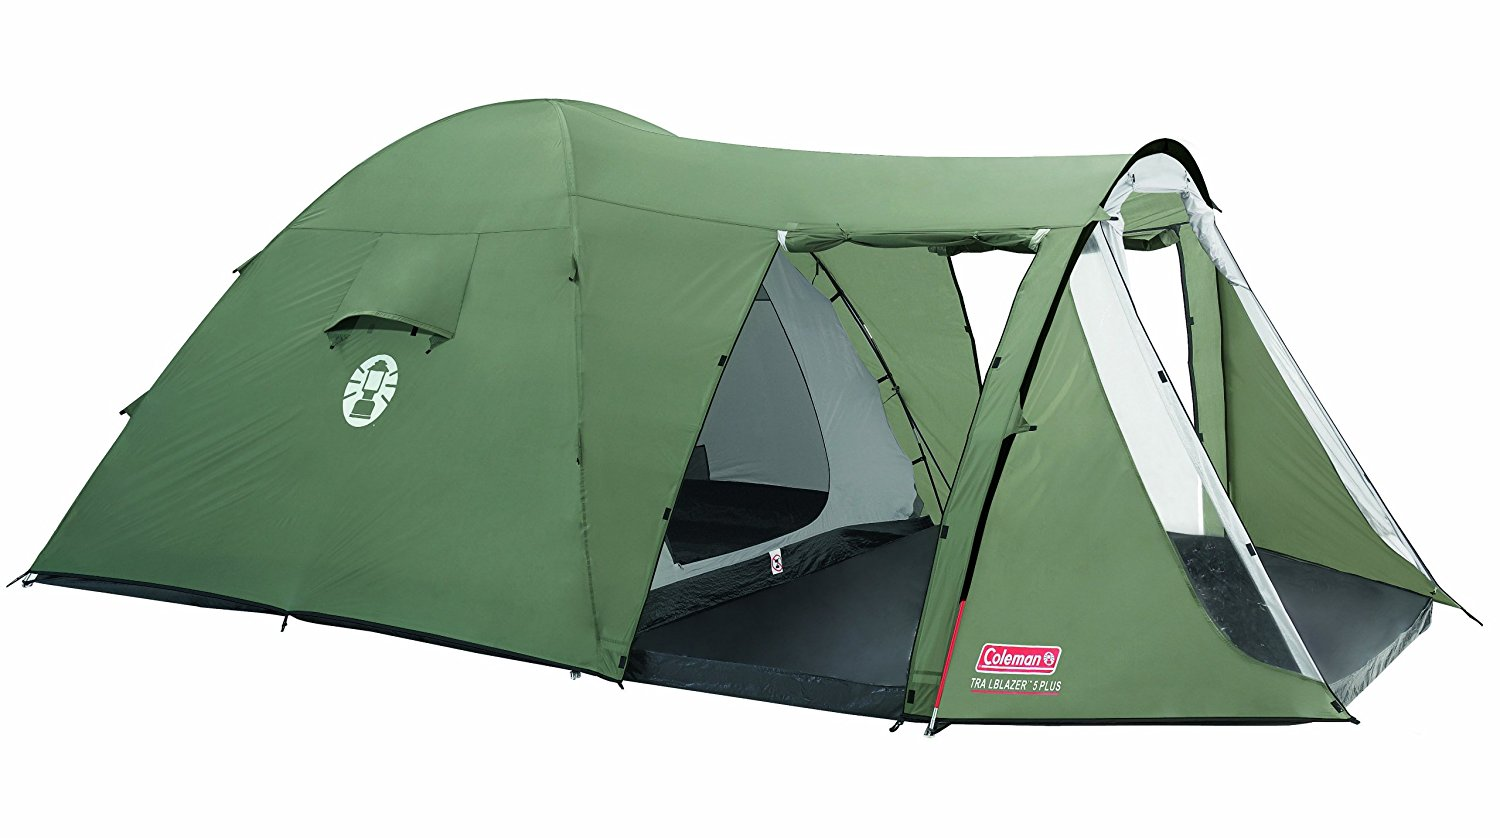 Coleman 5-person Dome Tent TRAILBLAZER 5 PLUS - dark green telts Kempingiem, pārgājieniem